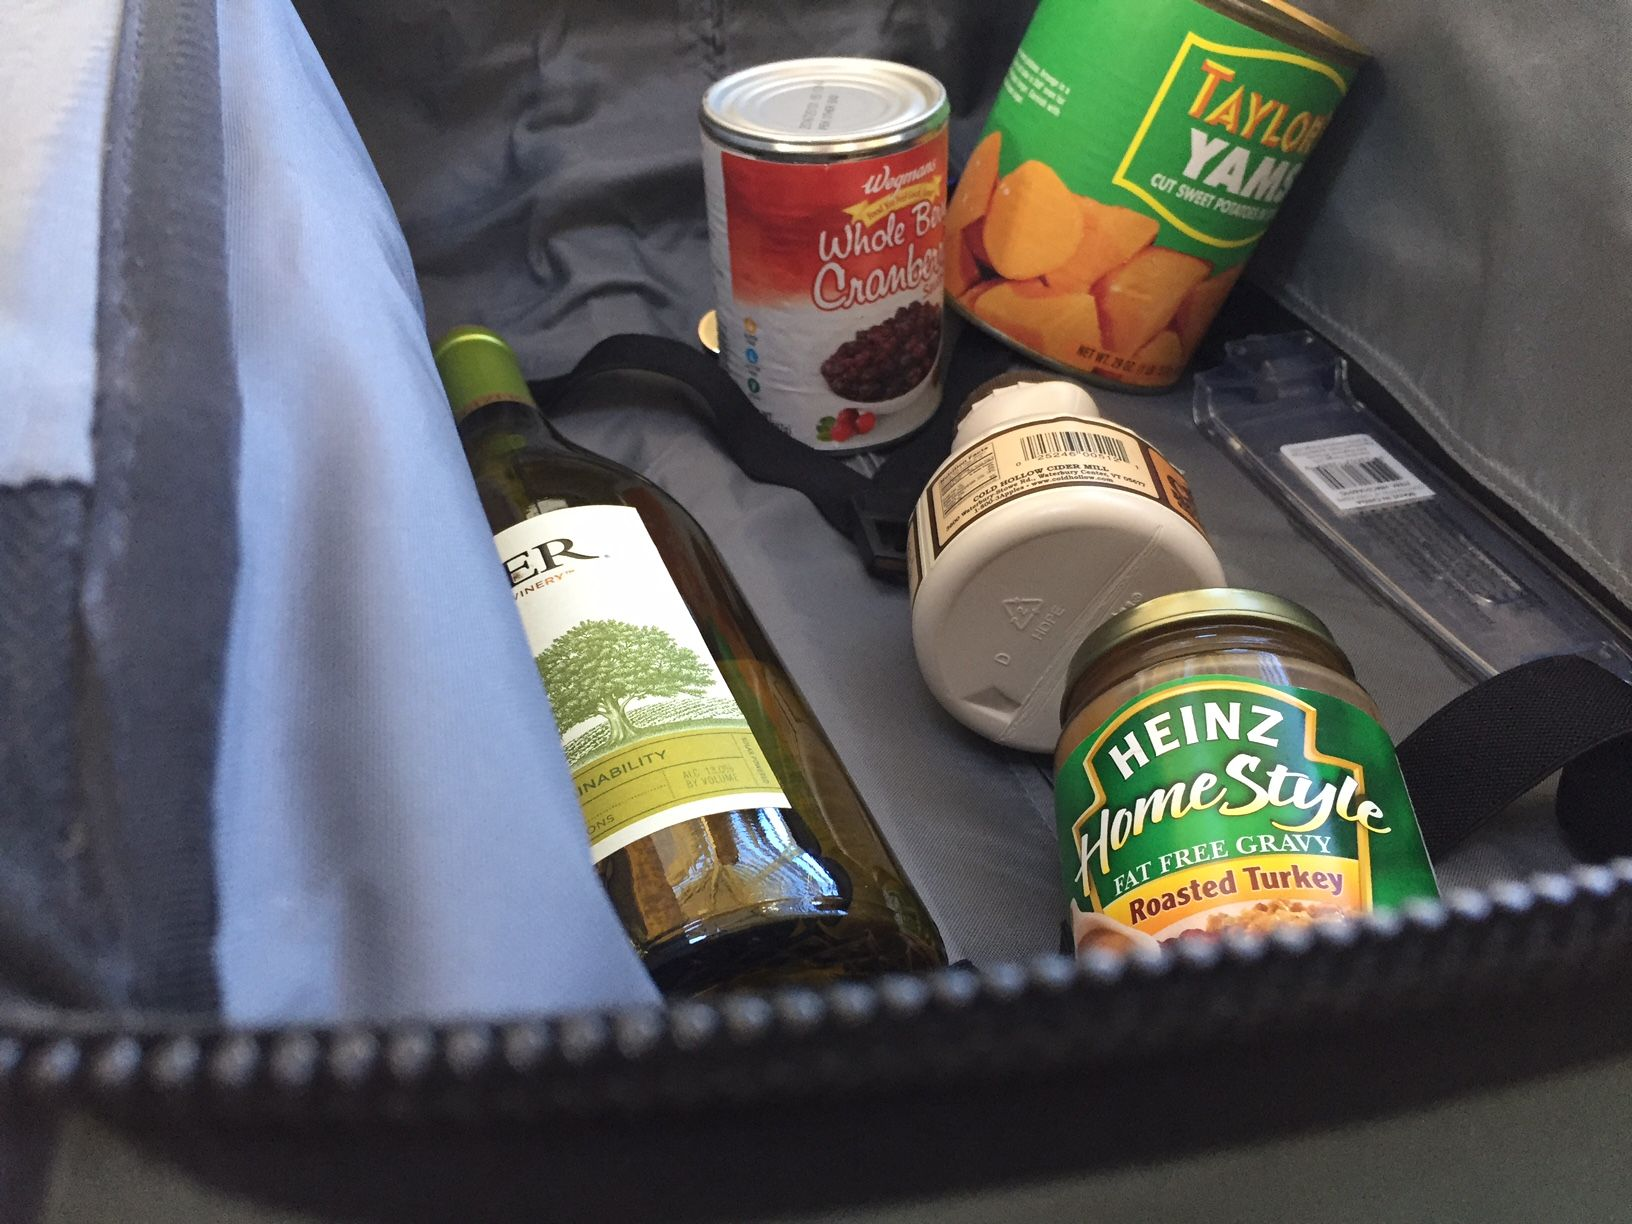 """The TSA's Lisa Farbstein says, """"If you can spill it, spray it, spread it, pump it or pour it, it's considered a liquid, gel or aerosol, and that should go in your checked bag if it's larger than 3.4 ounces."""" That includes cans -- so all these sauces and gravies need to be in a checked bag. (WTOP/Dennis Foley)"""